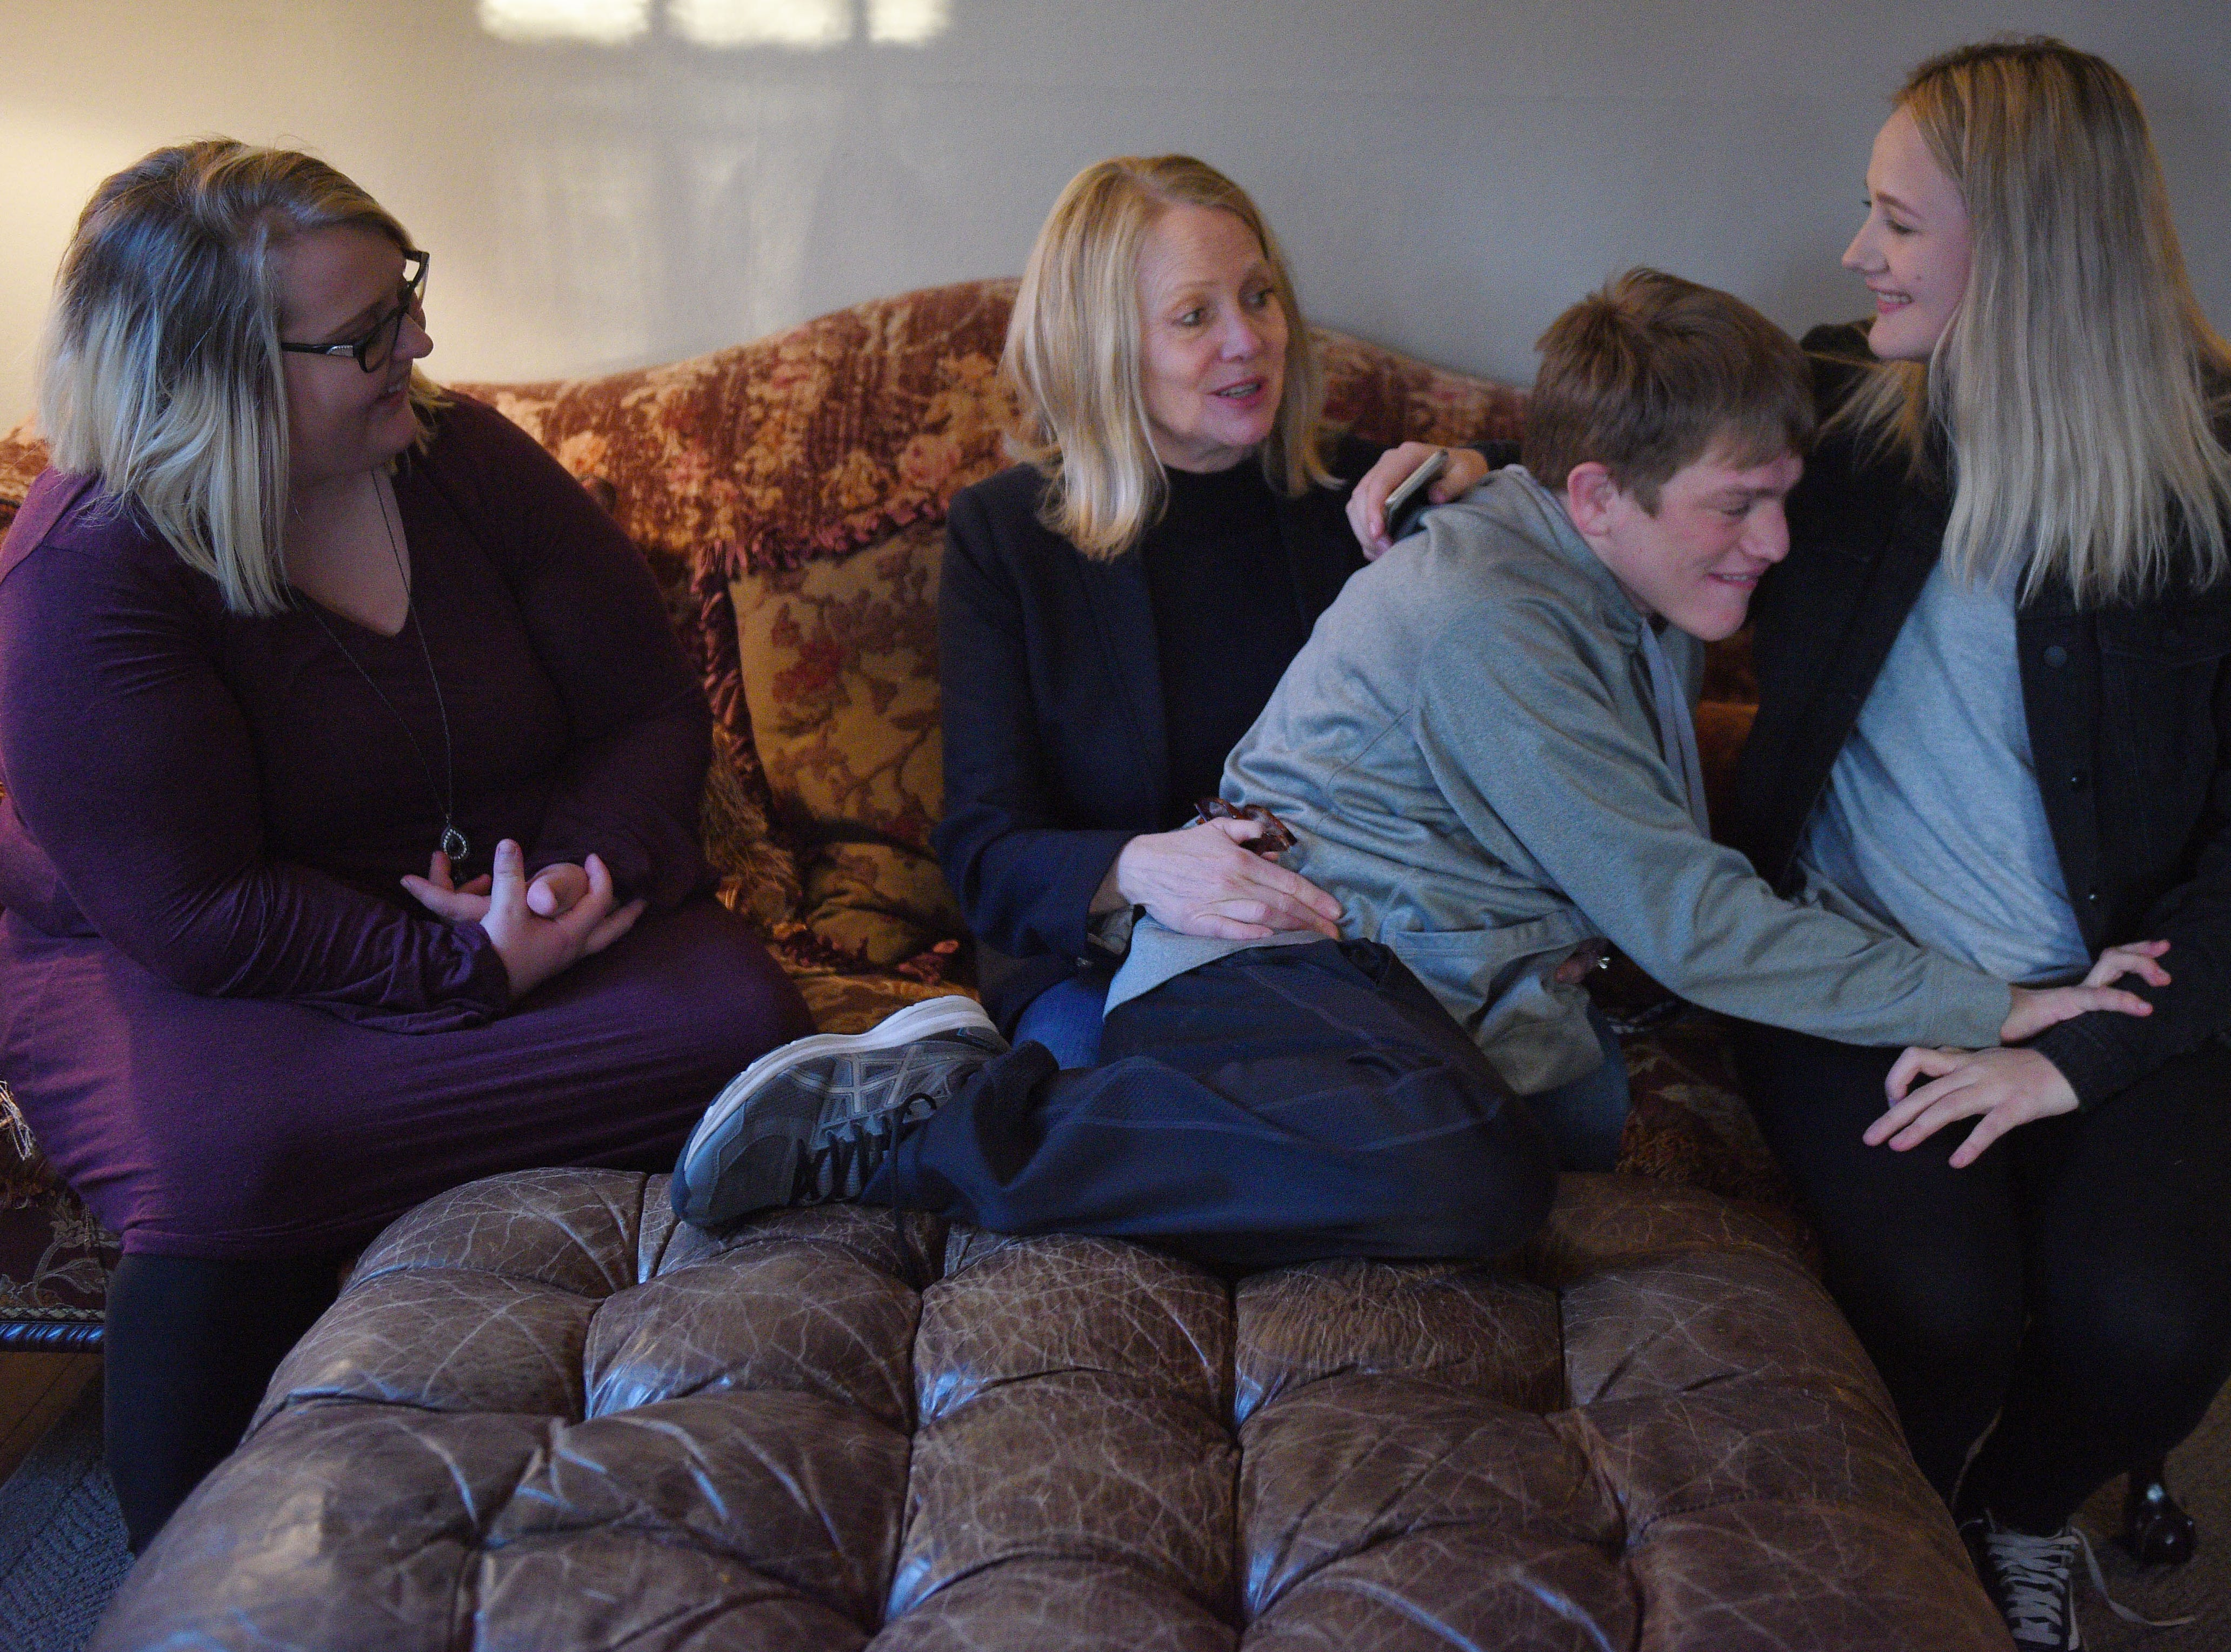 Jenna Askelson, Debbie Graff, Ben Graff and Elizabeth Graff visit Ben and Askelson's new house Wednesday, Nov. 7, in Sioux Falls. Ben is able to live by himself with the assistance of Shared Living Provider Kayla Harris and roommate Jenna Askelson.